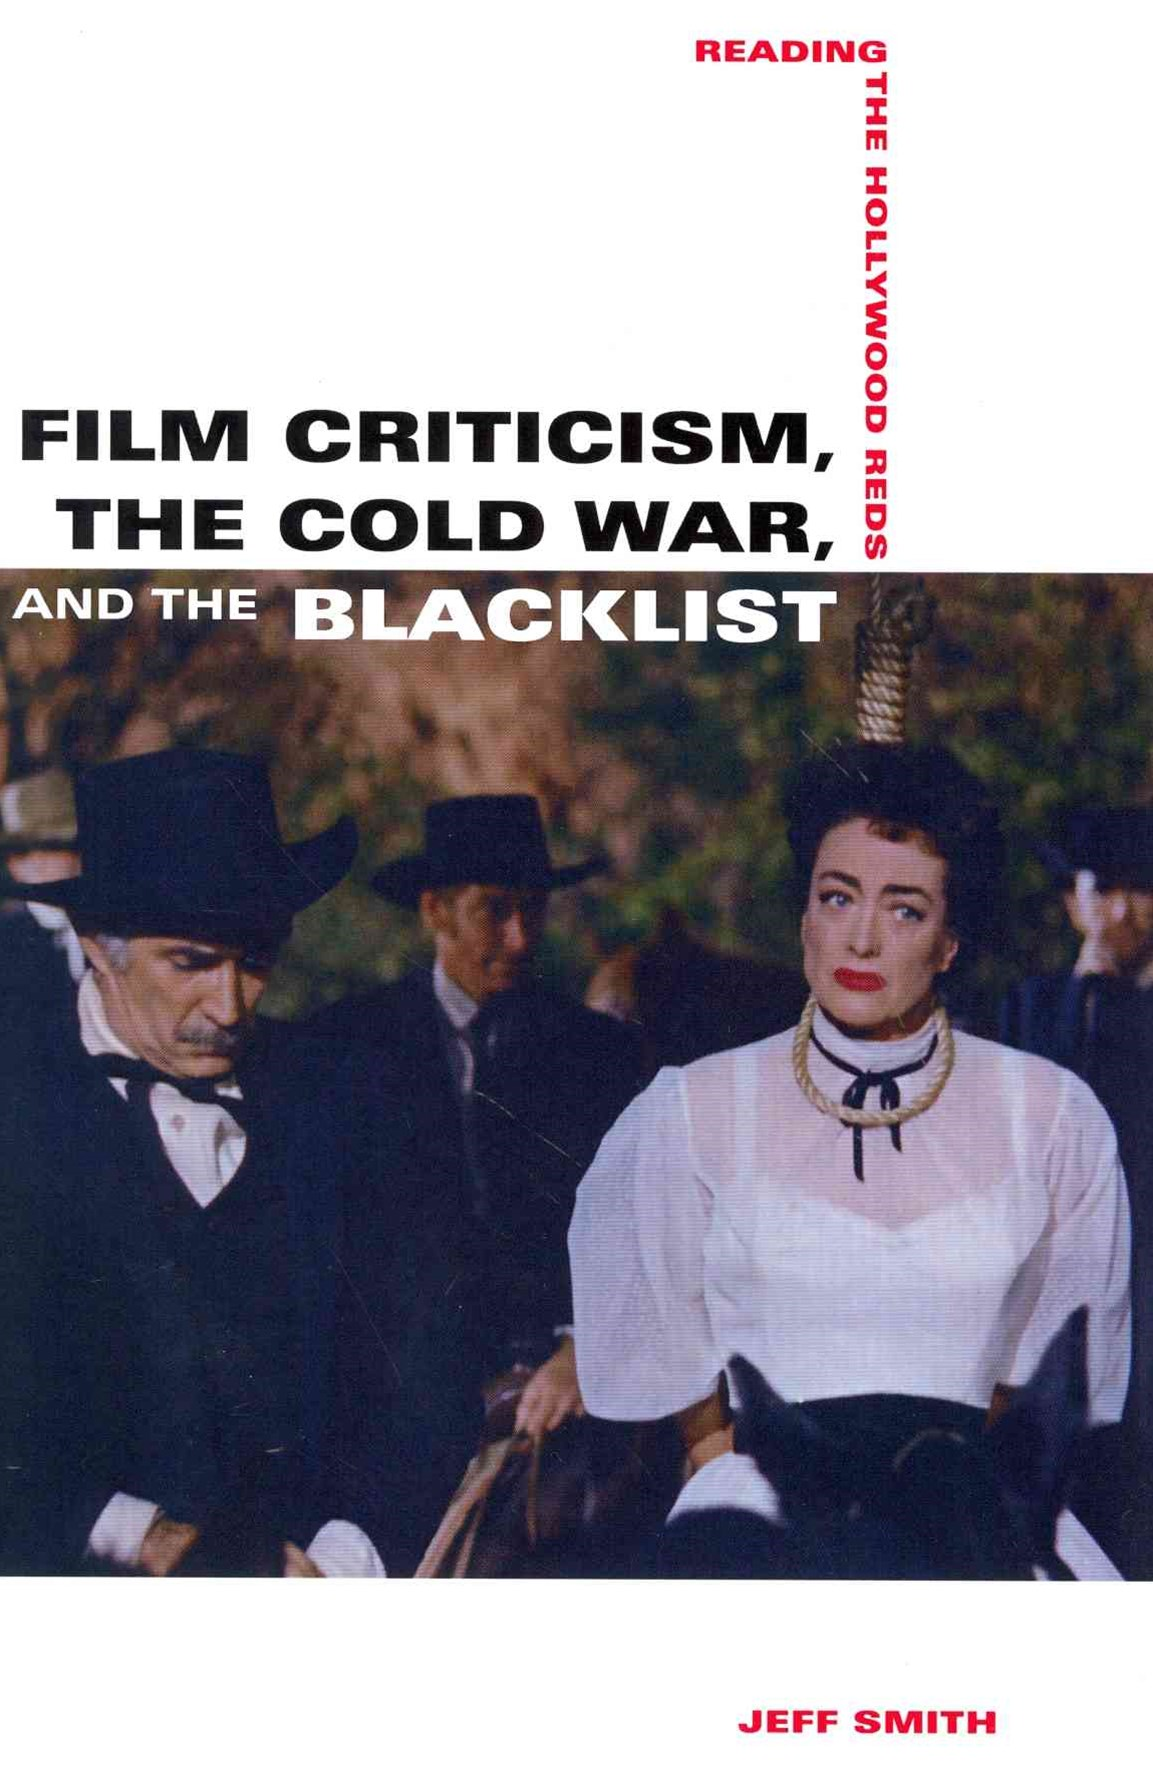 Film Criticism, the Cold War, and the Blacklist